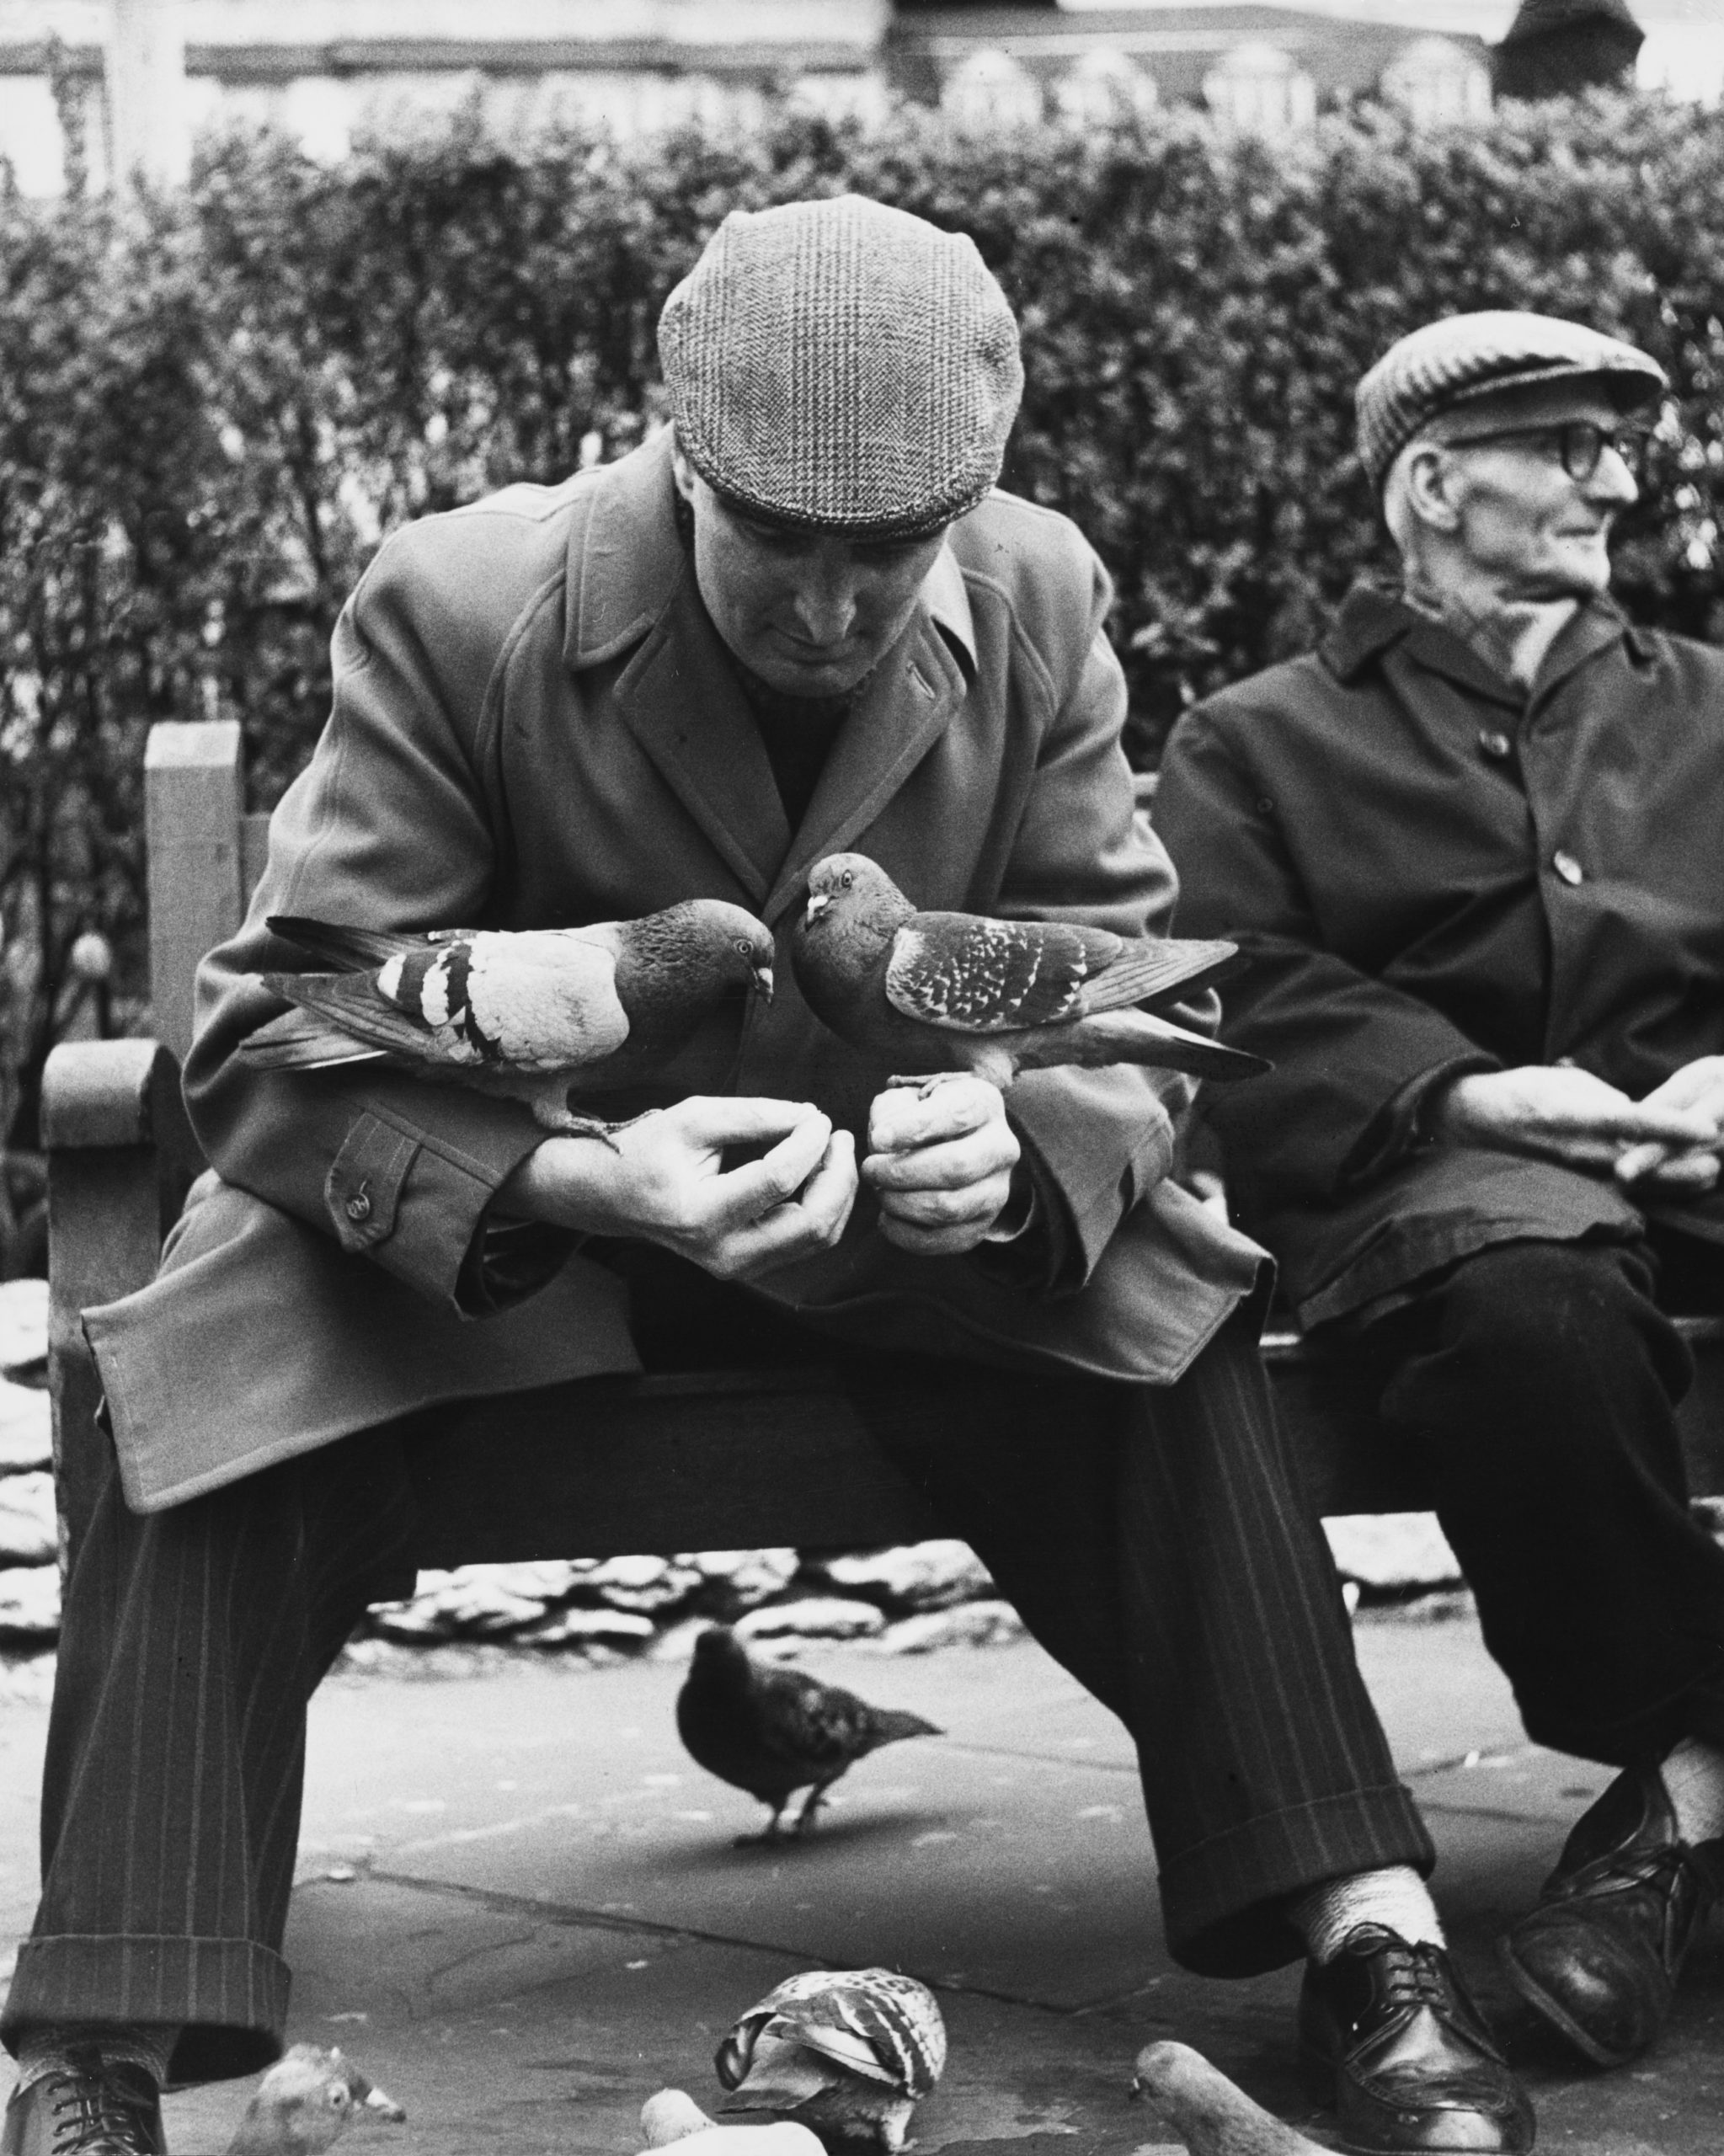 Shirley Baker, Manchester (Man with Pigeons), 1967